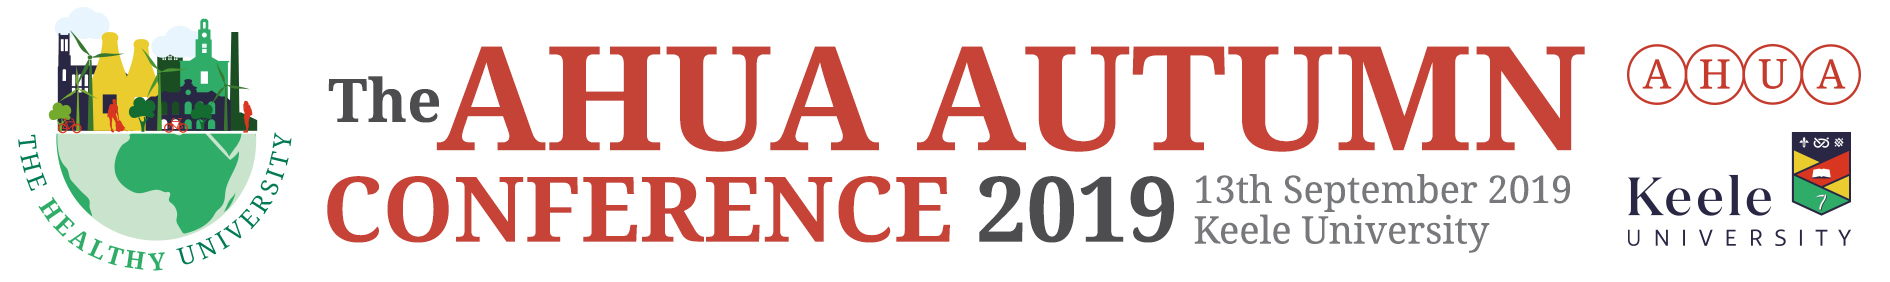 AHUA Autumn Conference 2019